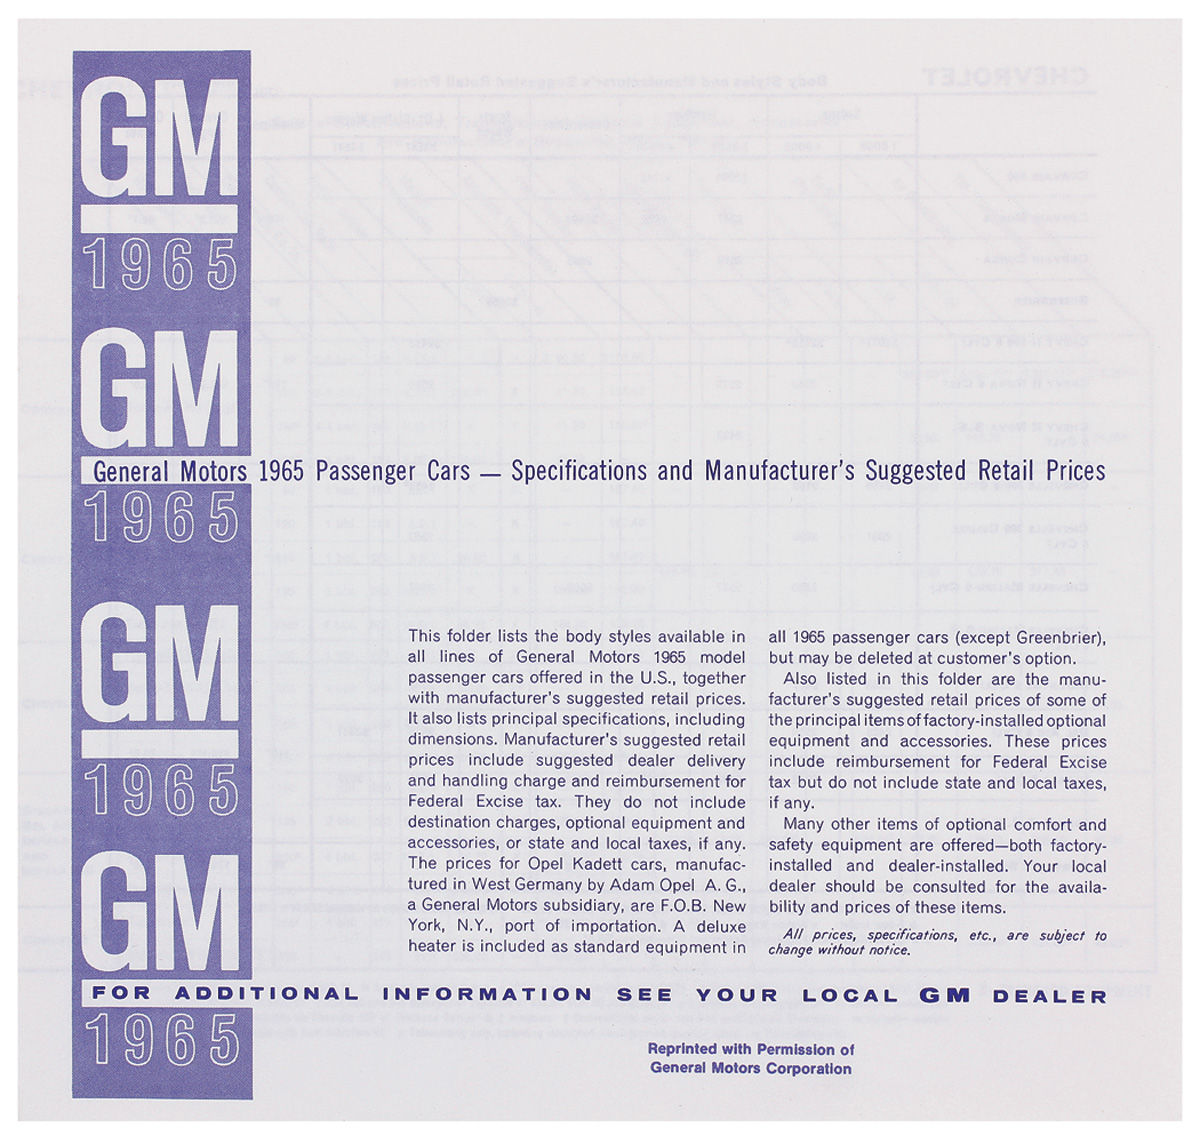 Photo of Suggested Retail Price Listing, GM Manufacturers